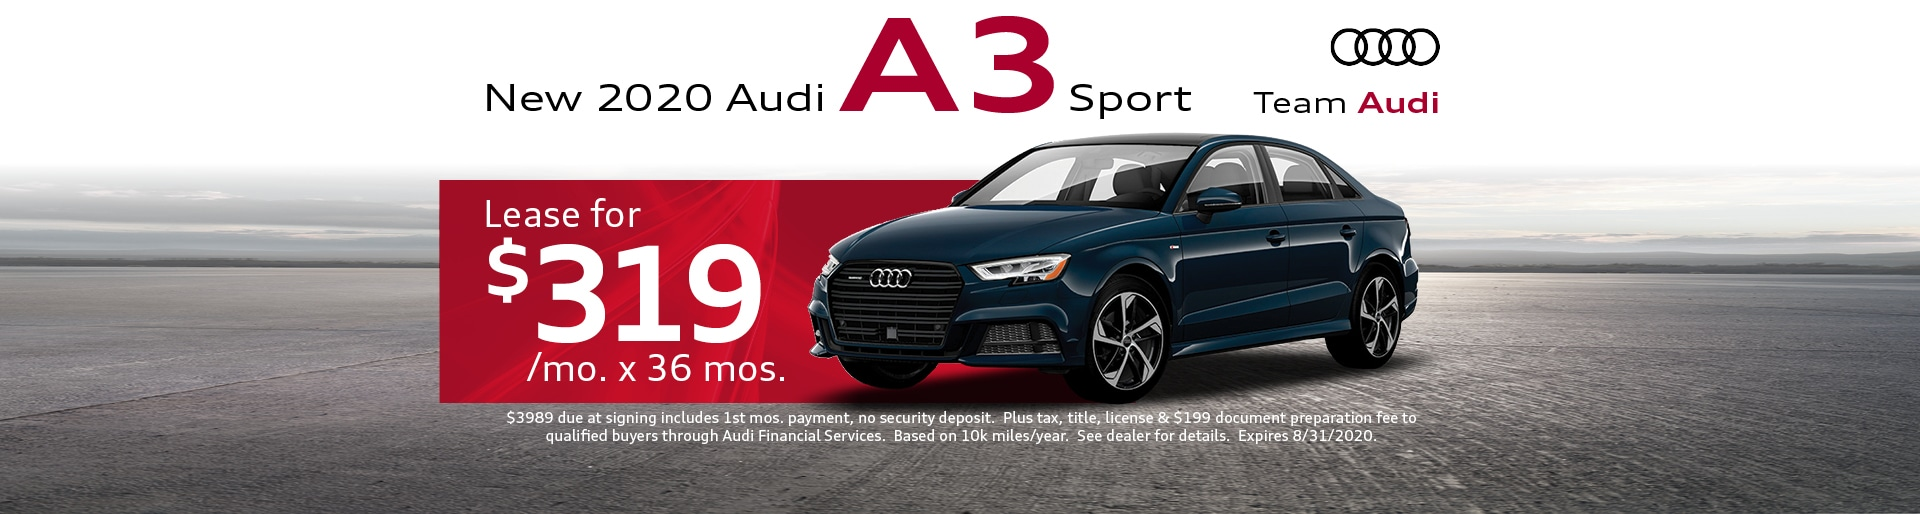 2020 Audi A3 Lease for $319 | Merrillville, IN